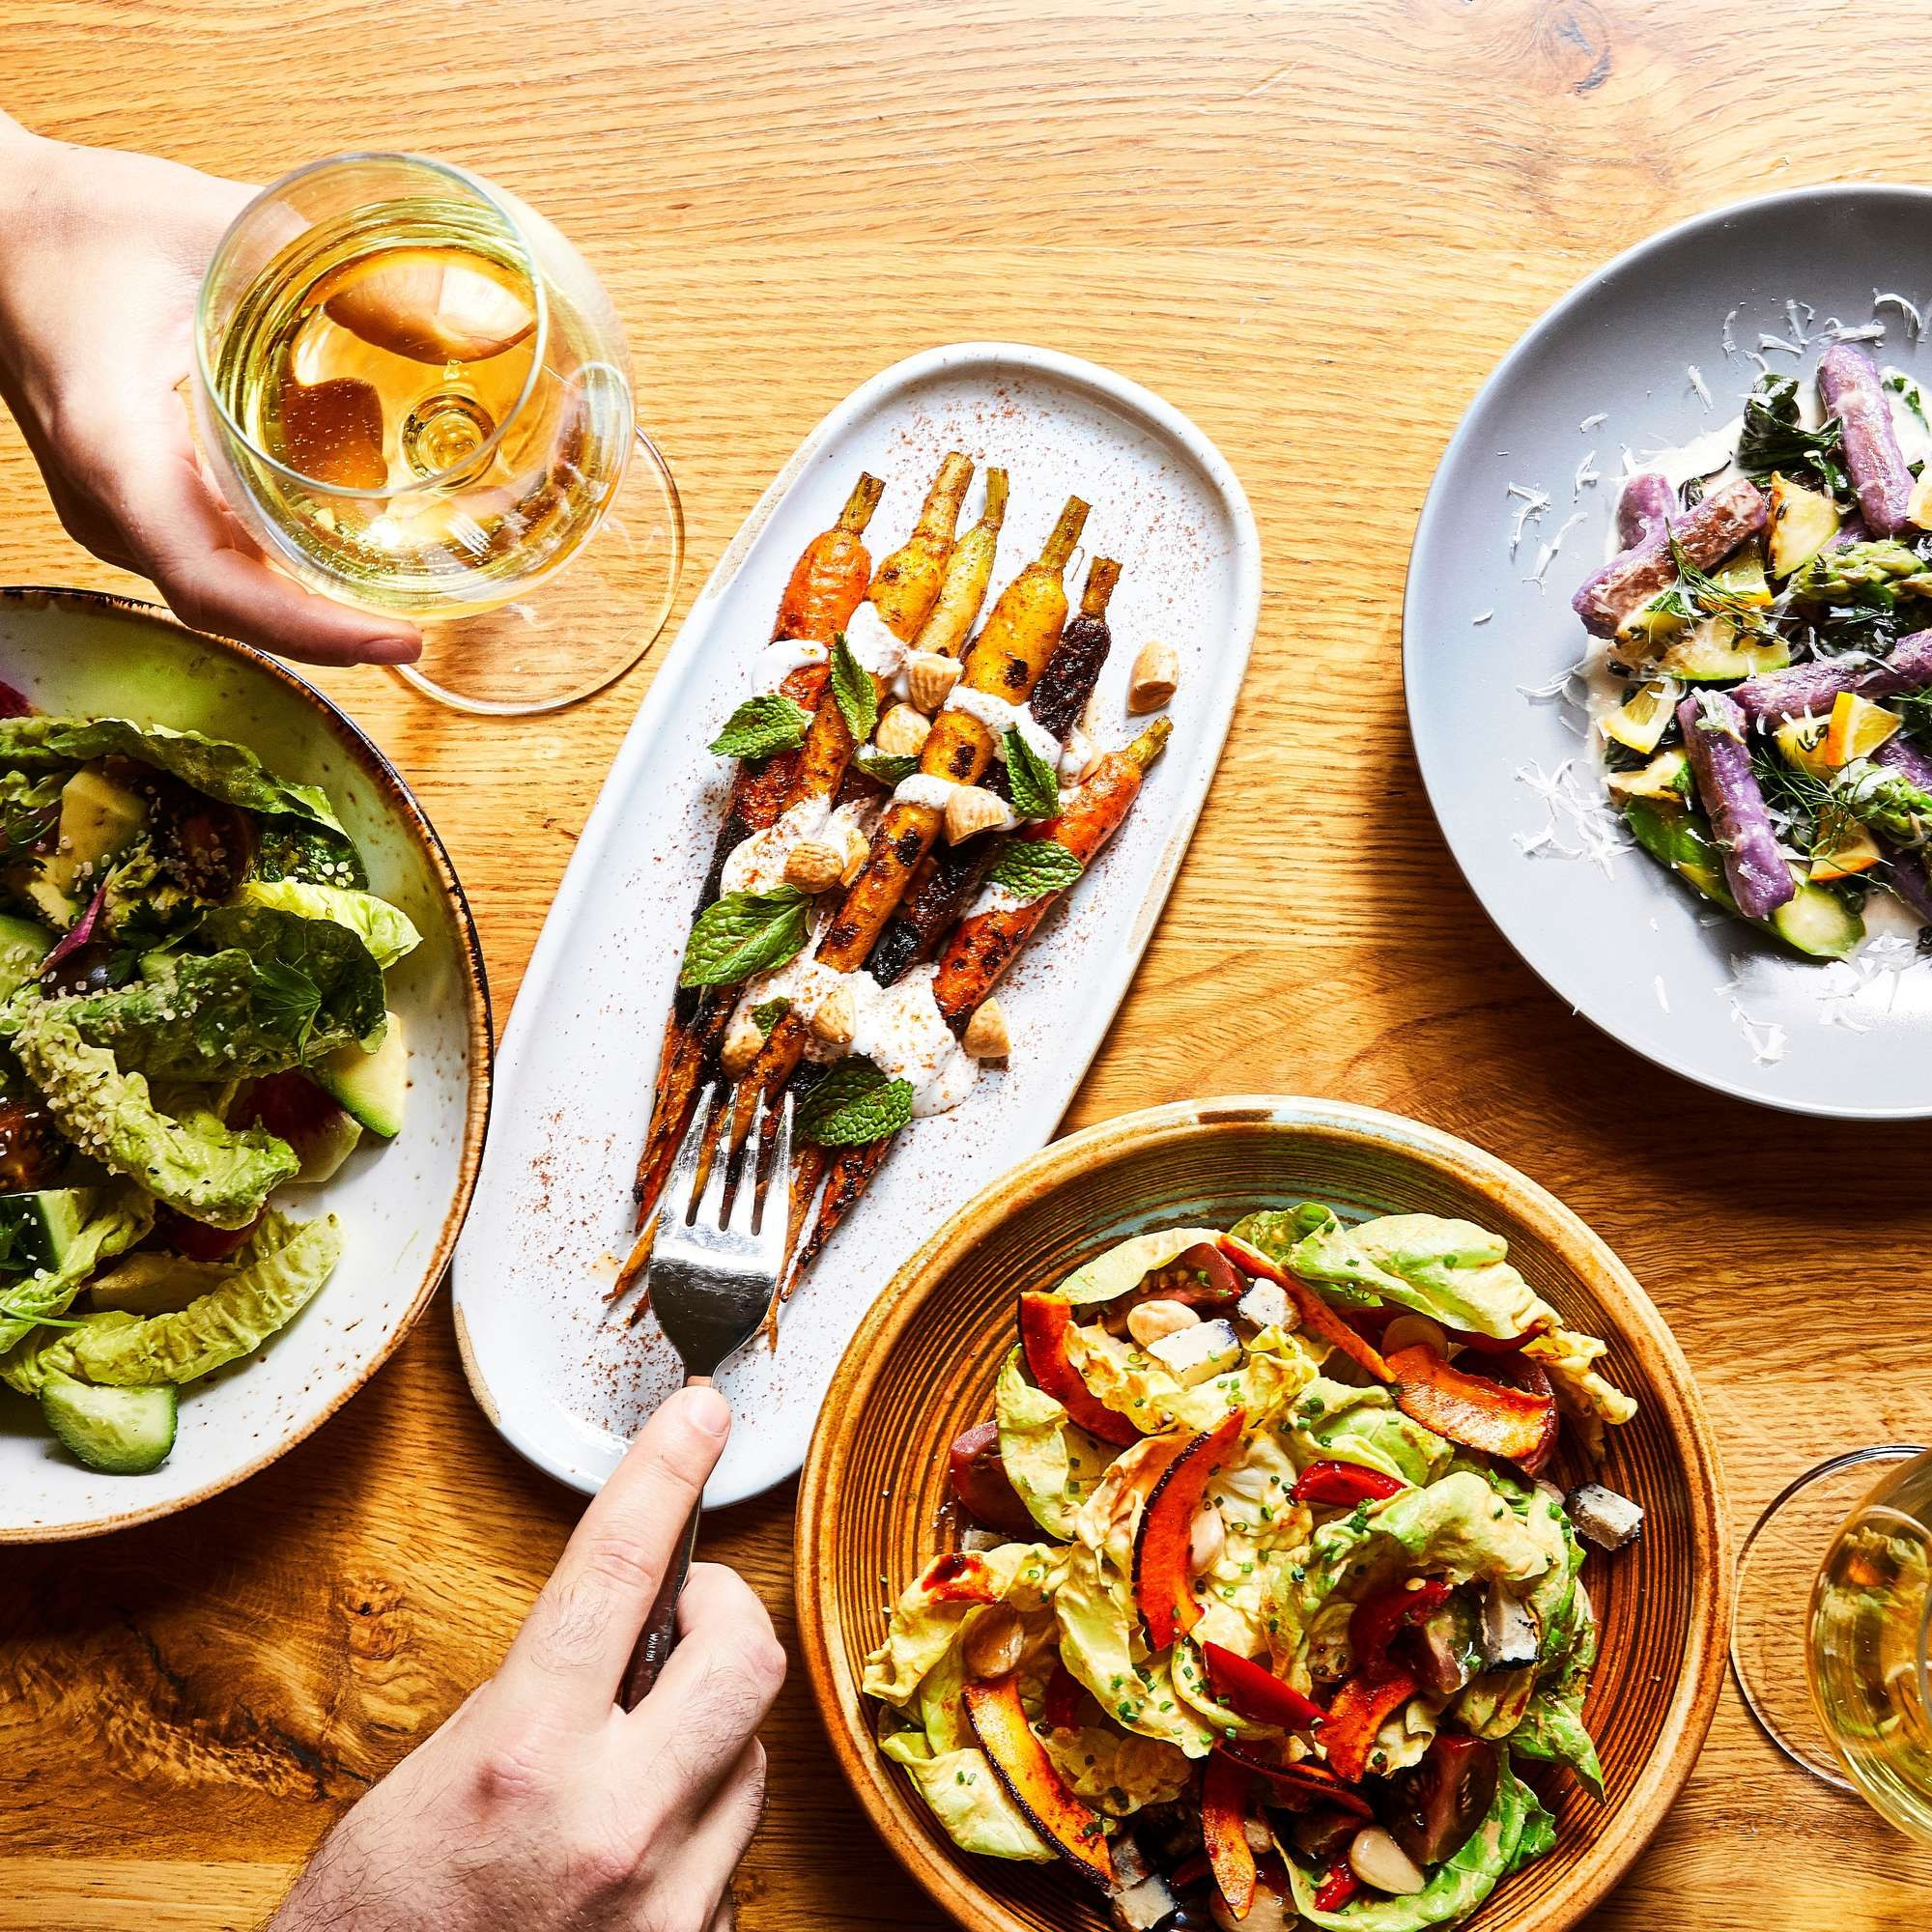 Pin By Marko Trisnohadi On San Francisco Bay Area Bars And Restaurants In 2020 Best Vegetarian Restaurants San Francisco Restaurants Vegetarian